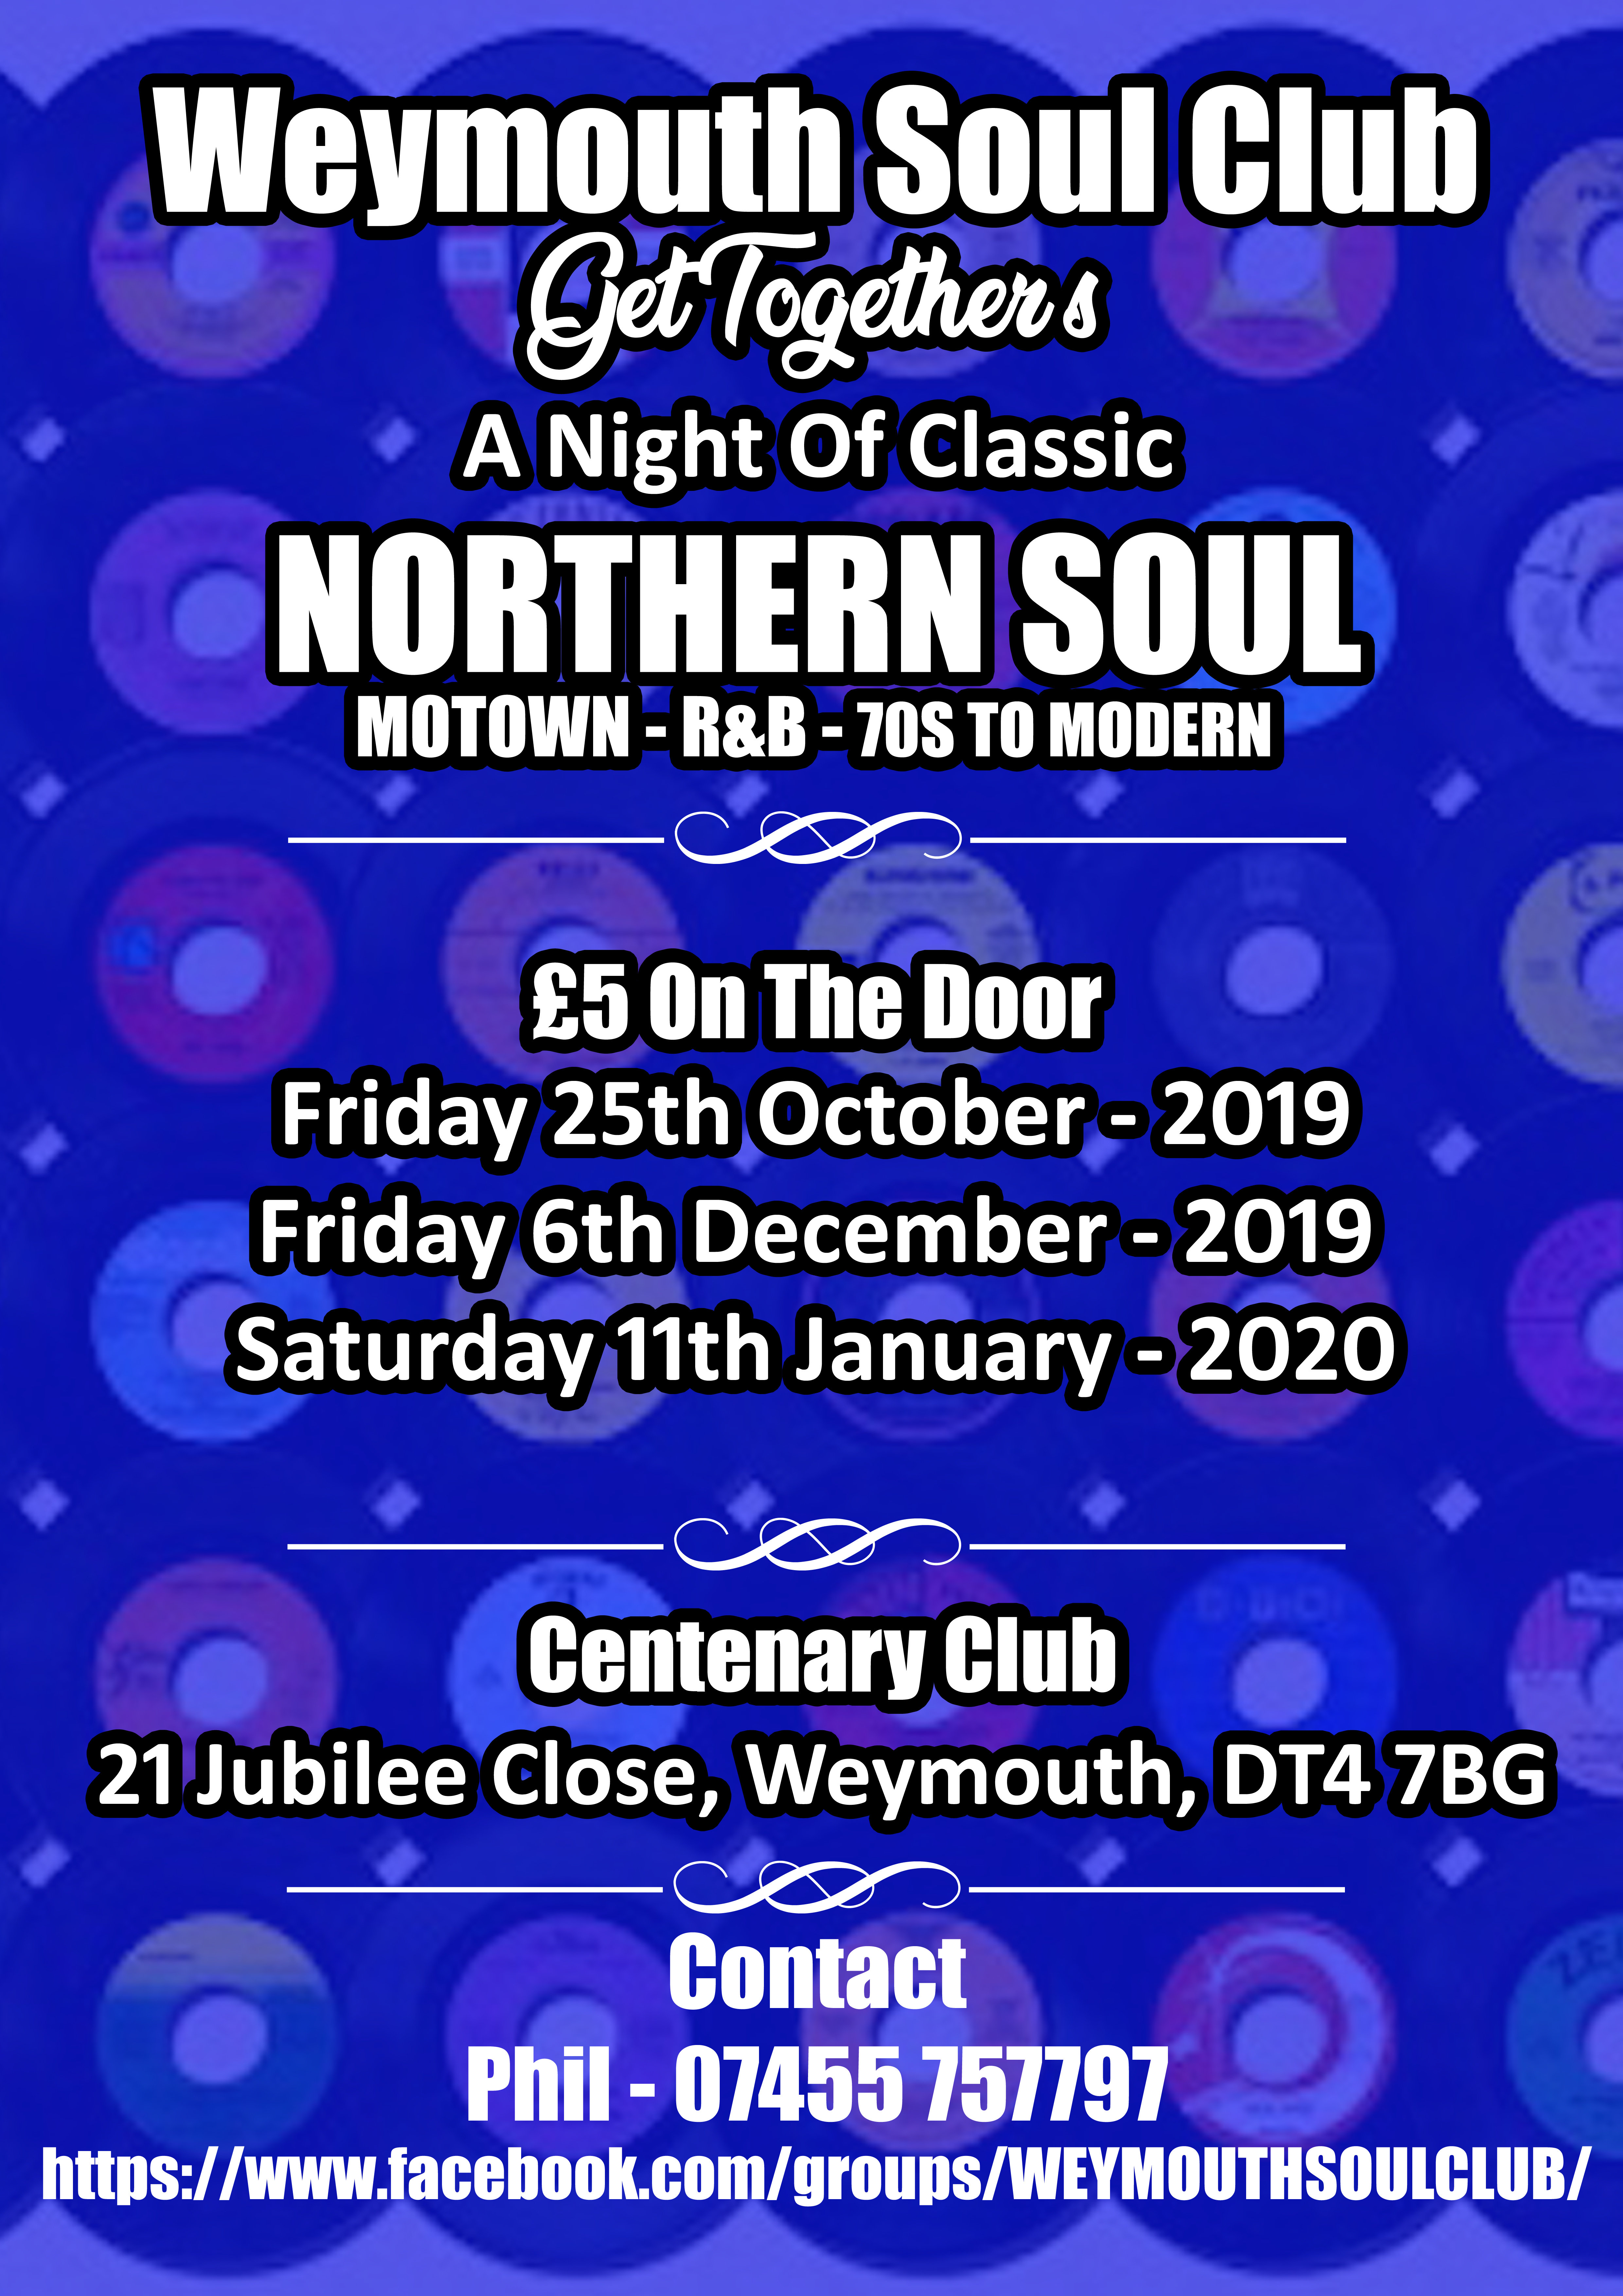 Weymouth Soul Club Get Togethers flyer